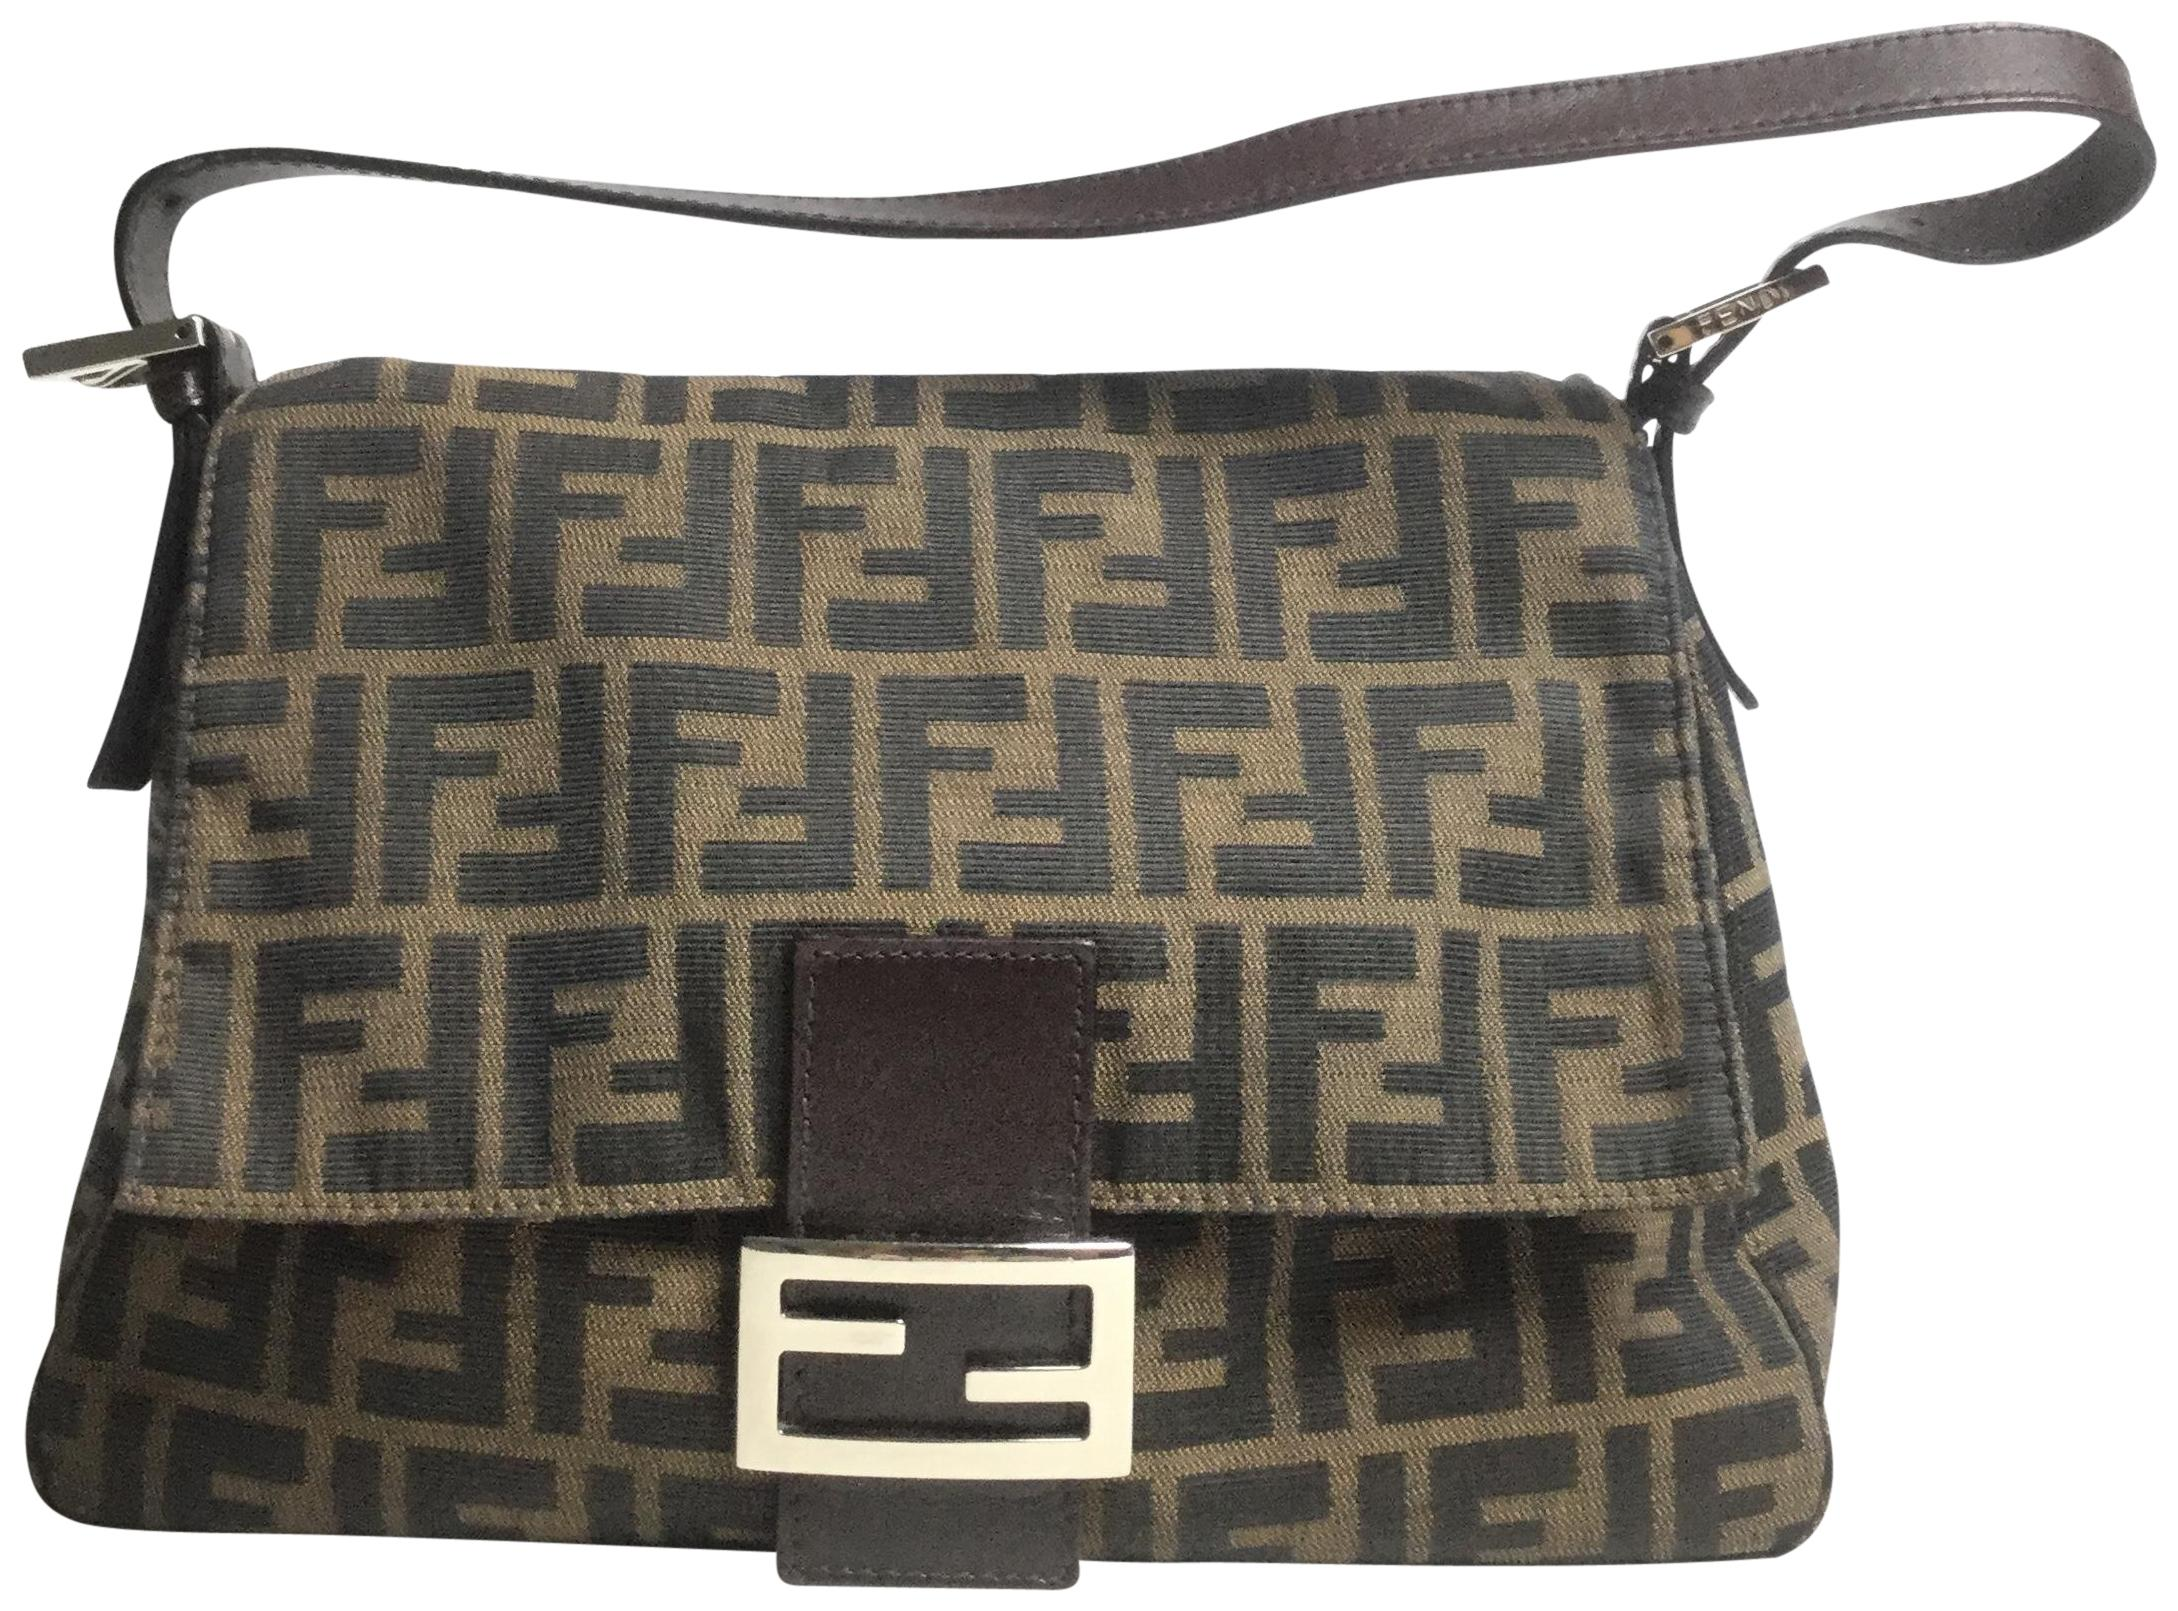 promo code for fendi bags new collection 2016 13e8d 3f4b1 985c1ef4c8591